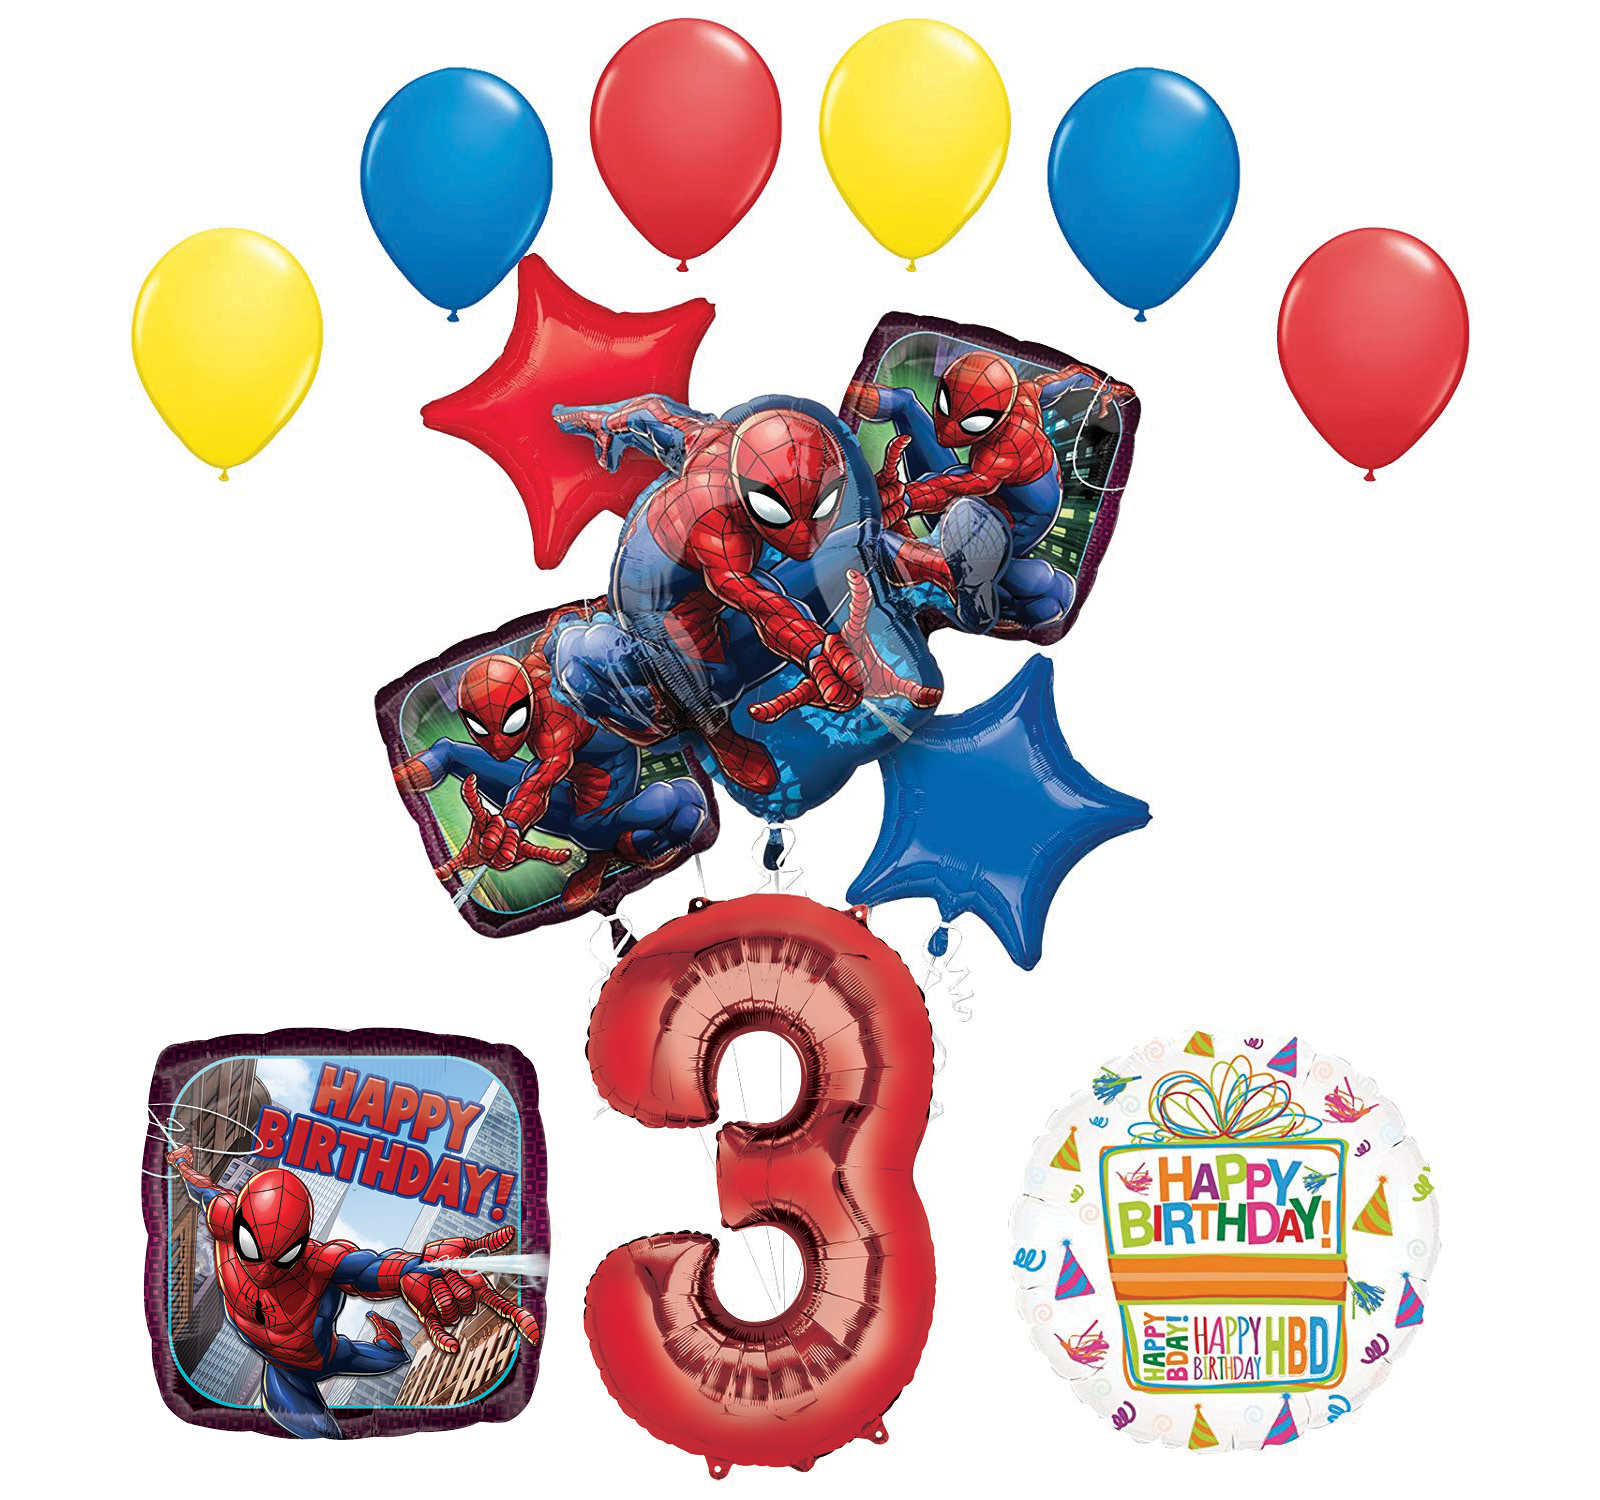 The Ultimate Spider-Man 3rd Birthday Party Supplies and Balloon Decorations